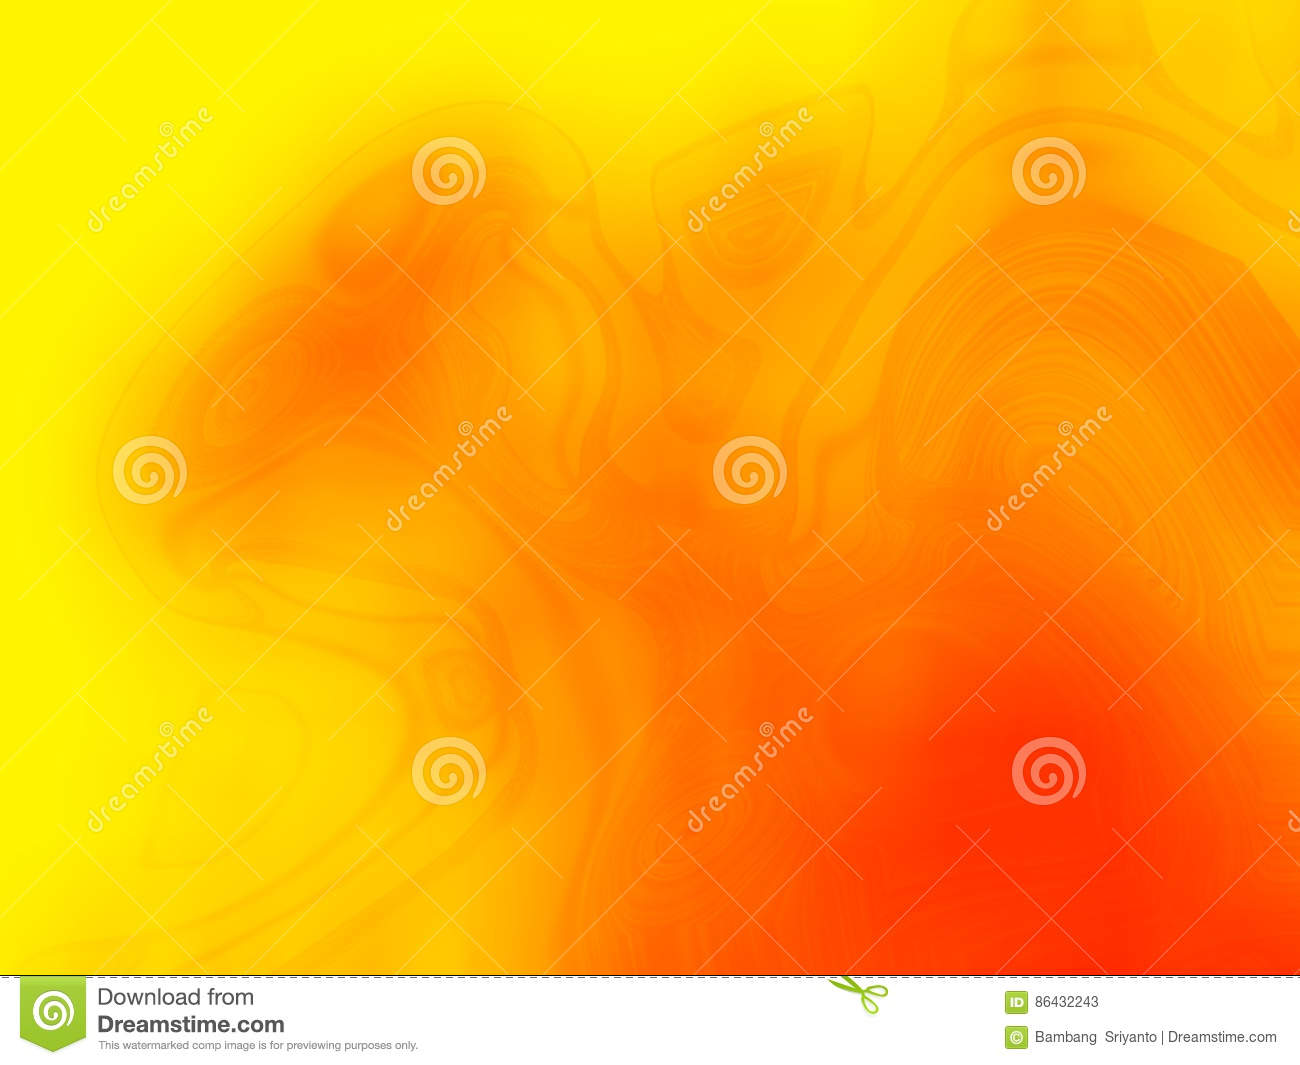 8 679 Vector Backgrounds Photos Free Royalty Free Stock Photos From Dreamstime